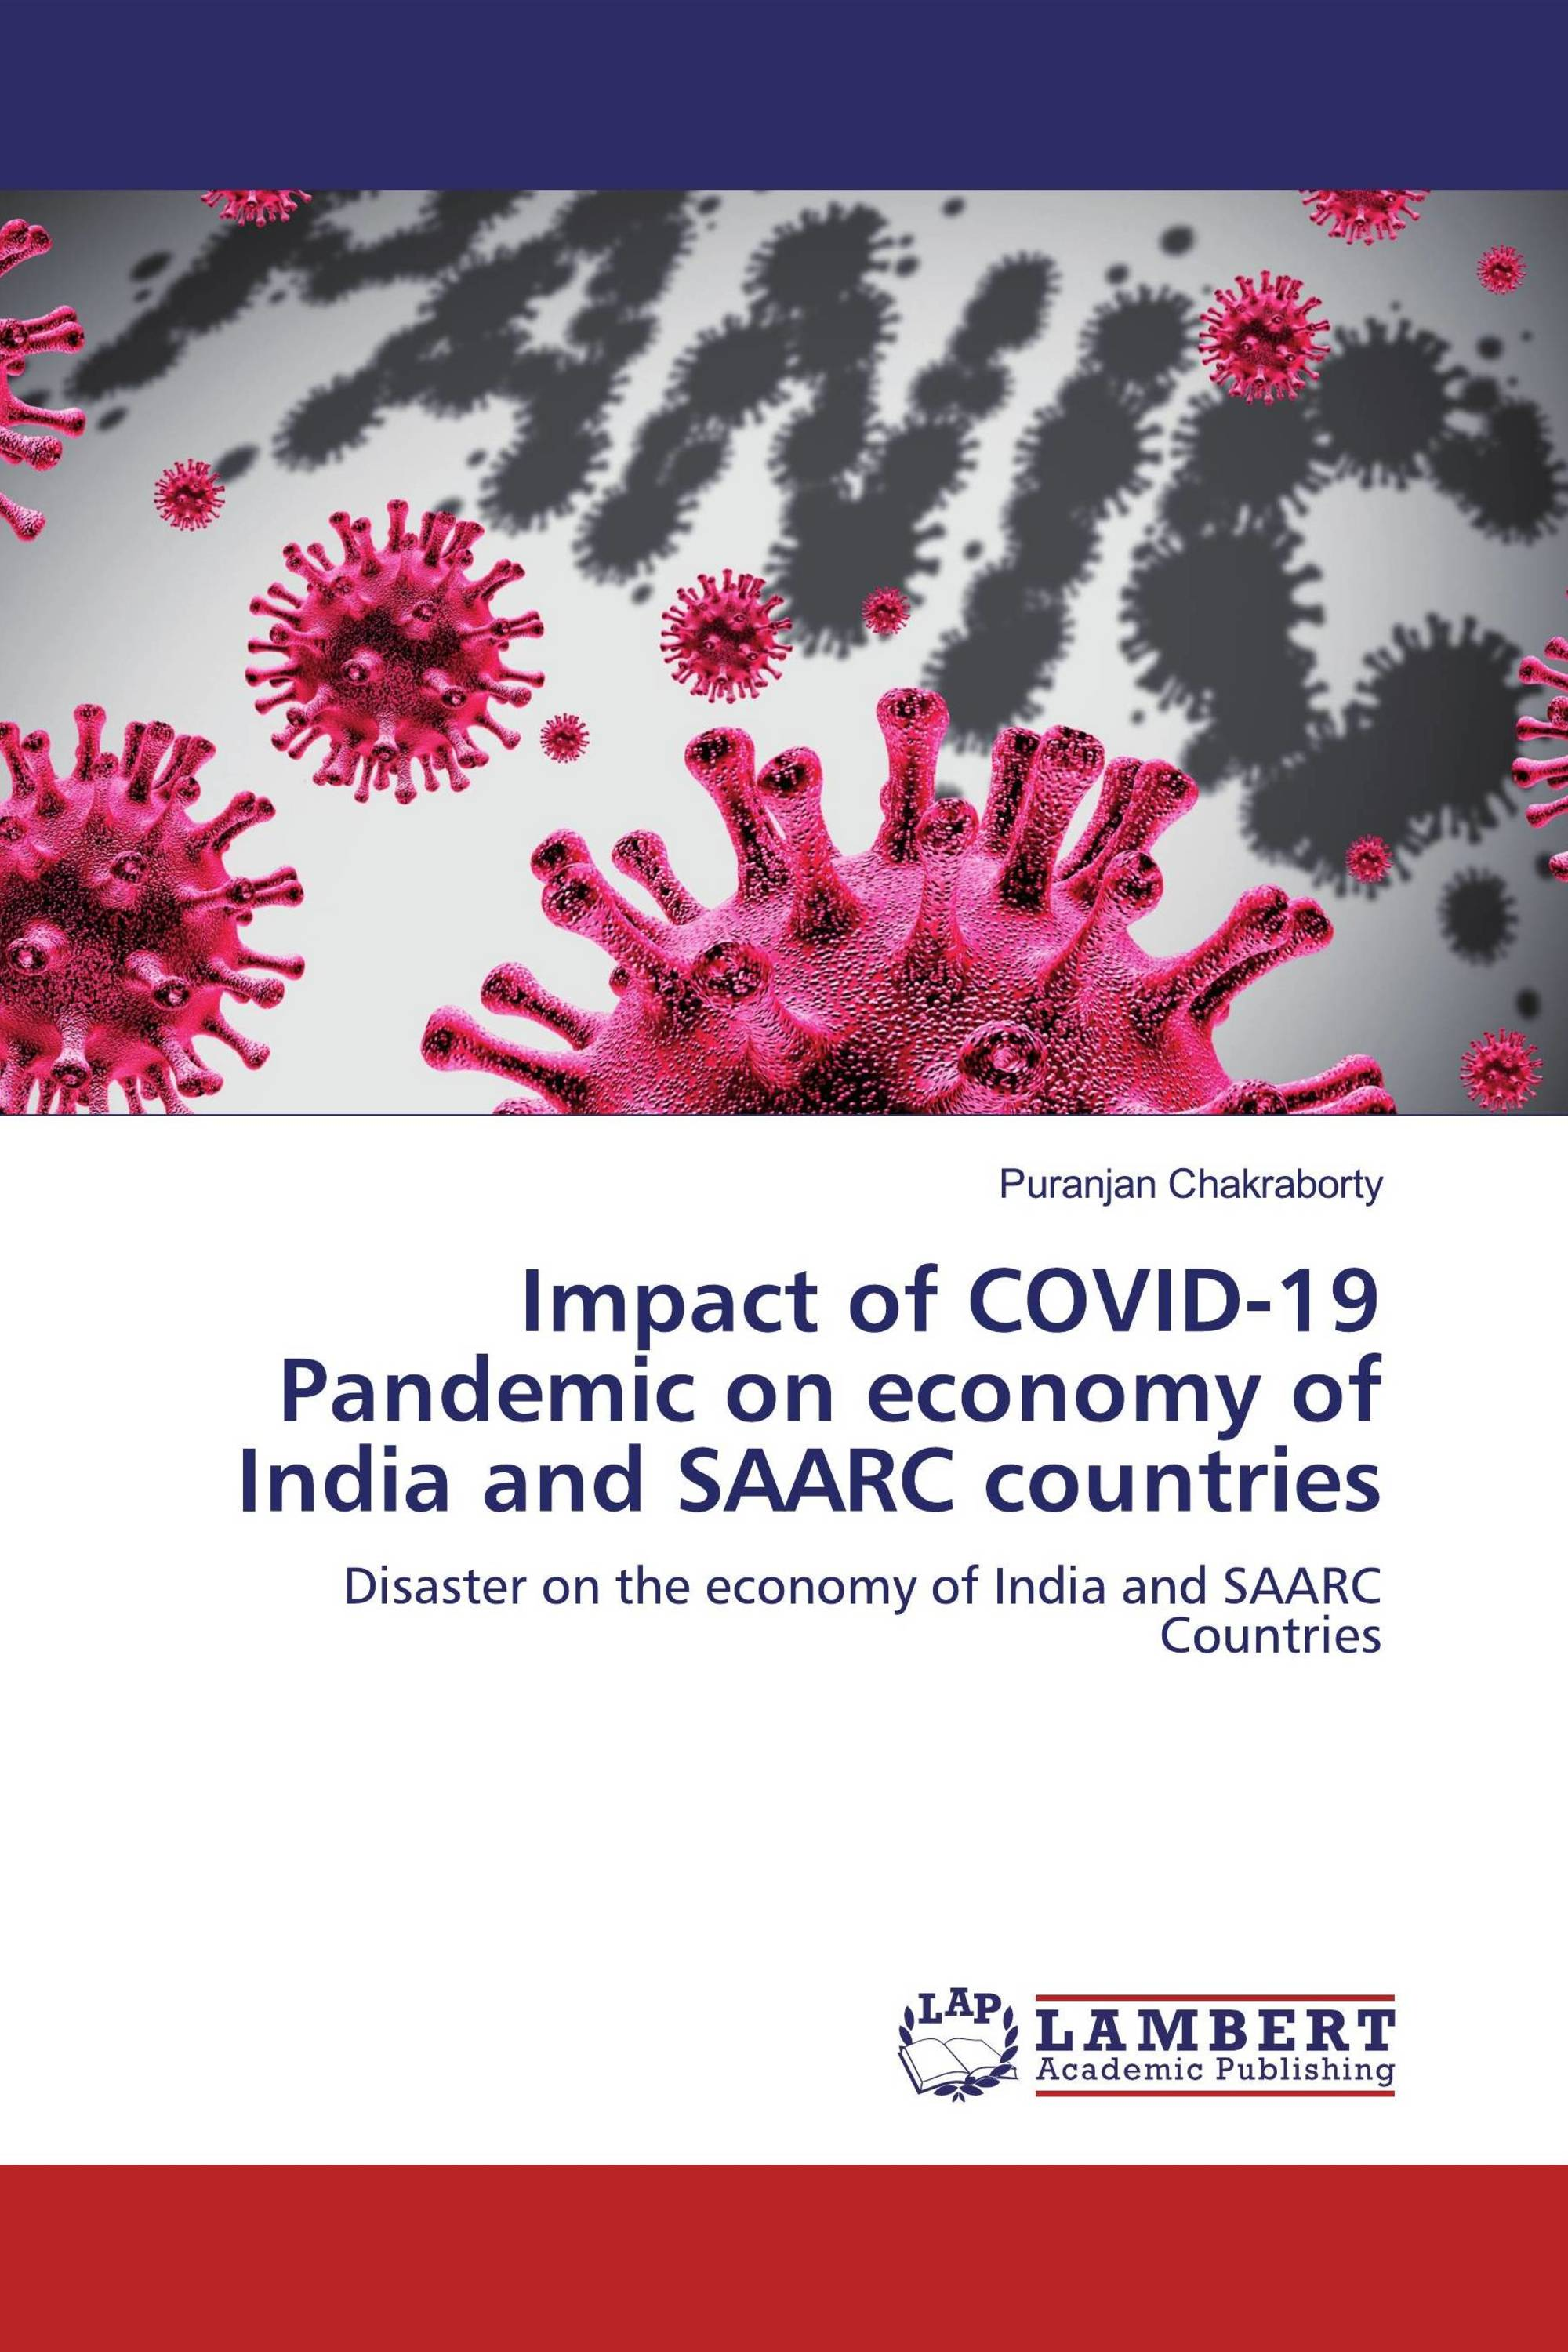 Impact of COVID-19 Pandemic on economy of India and SAARC countries